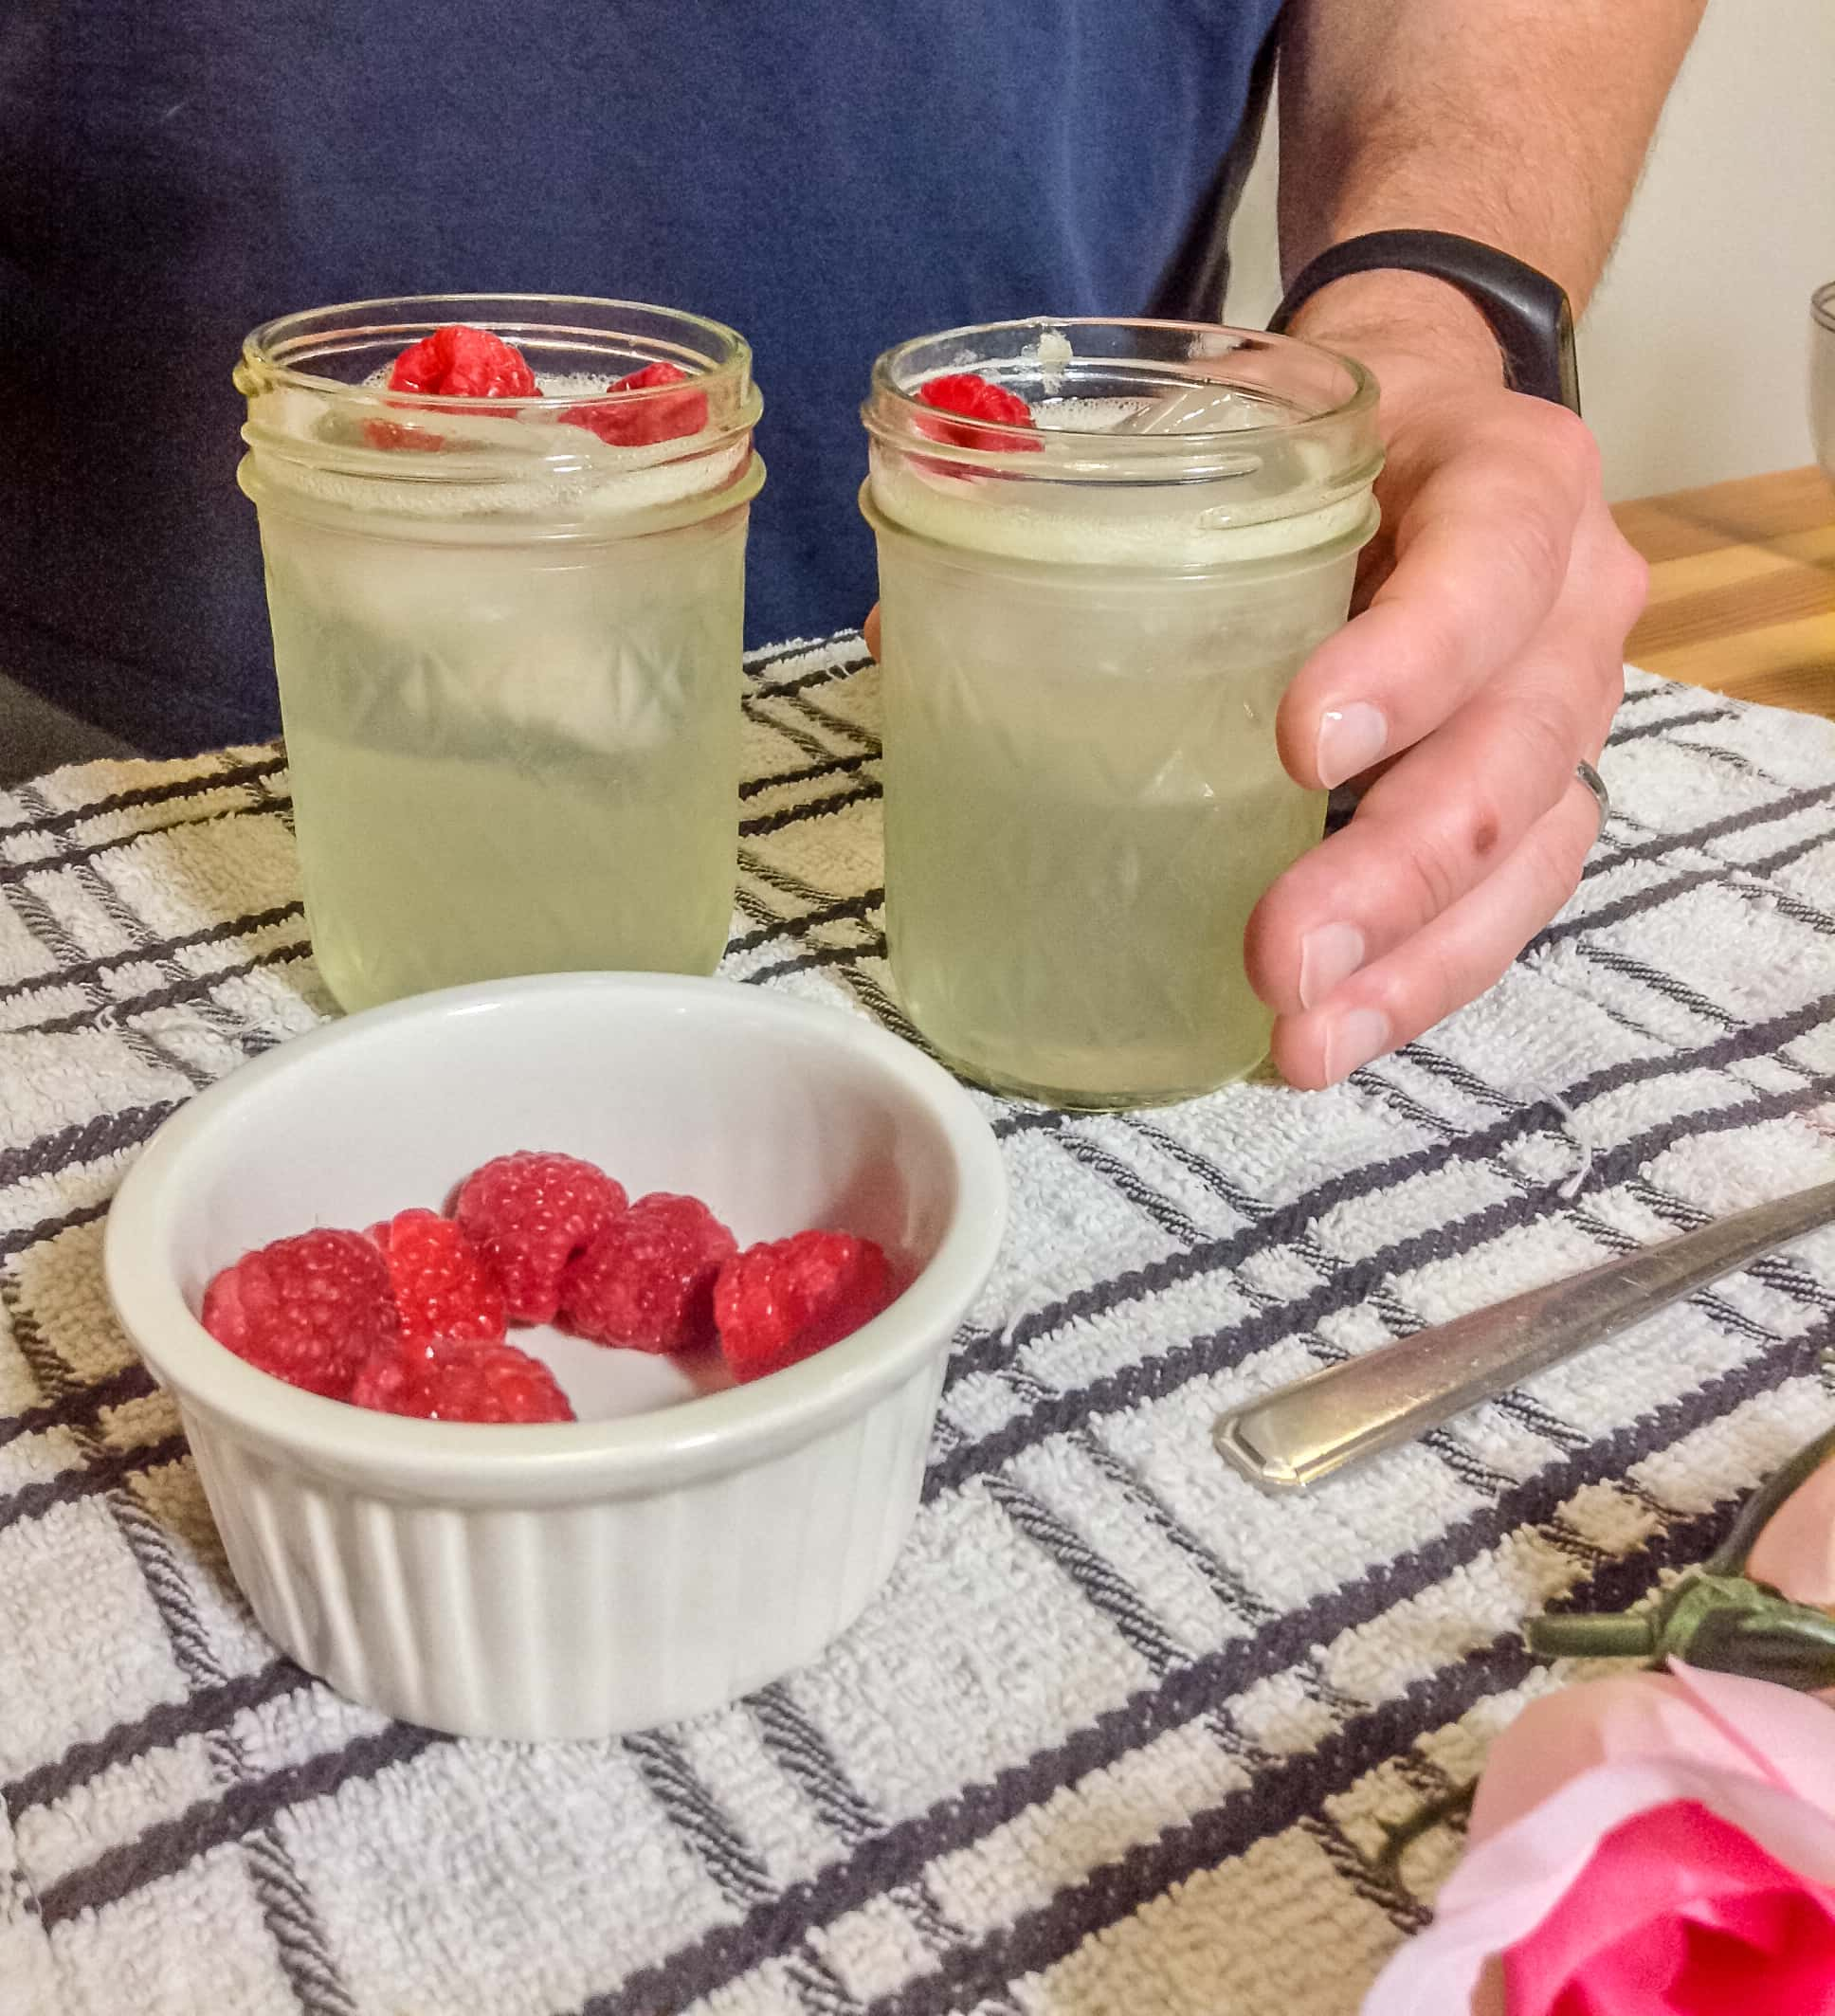 Photo of rose cocktail with raspberries on top and a bowl